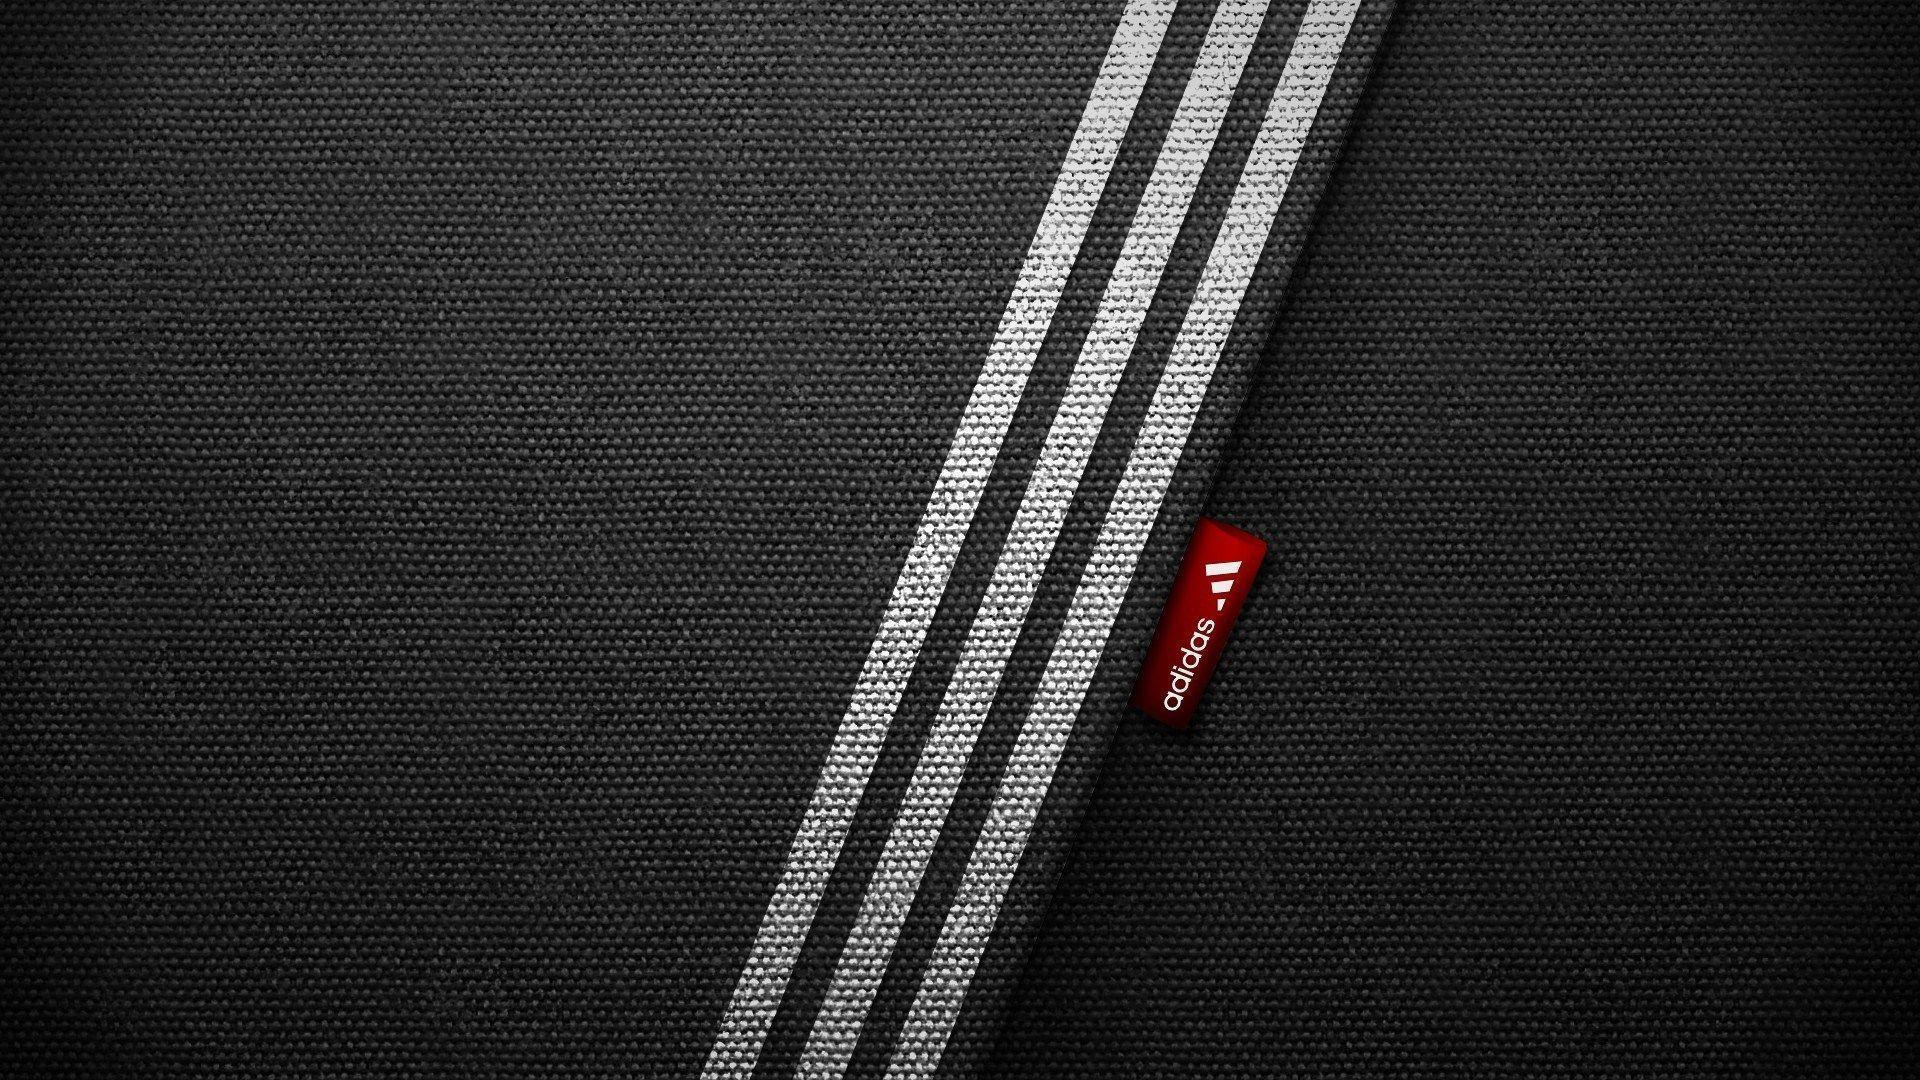 Adidas Logo Wallpapers 2015 - Wallpaper Cave